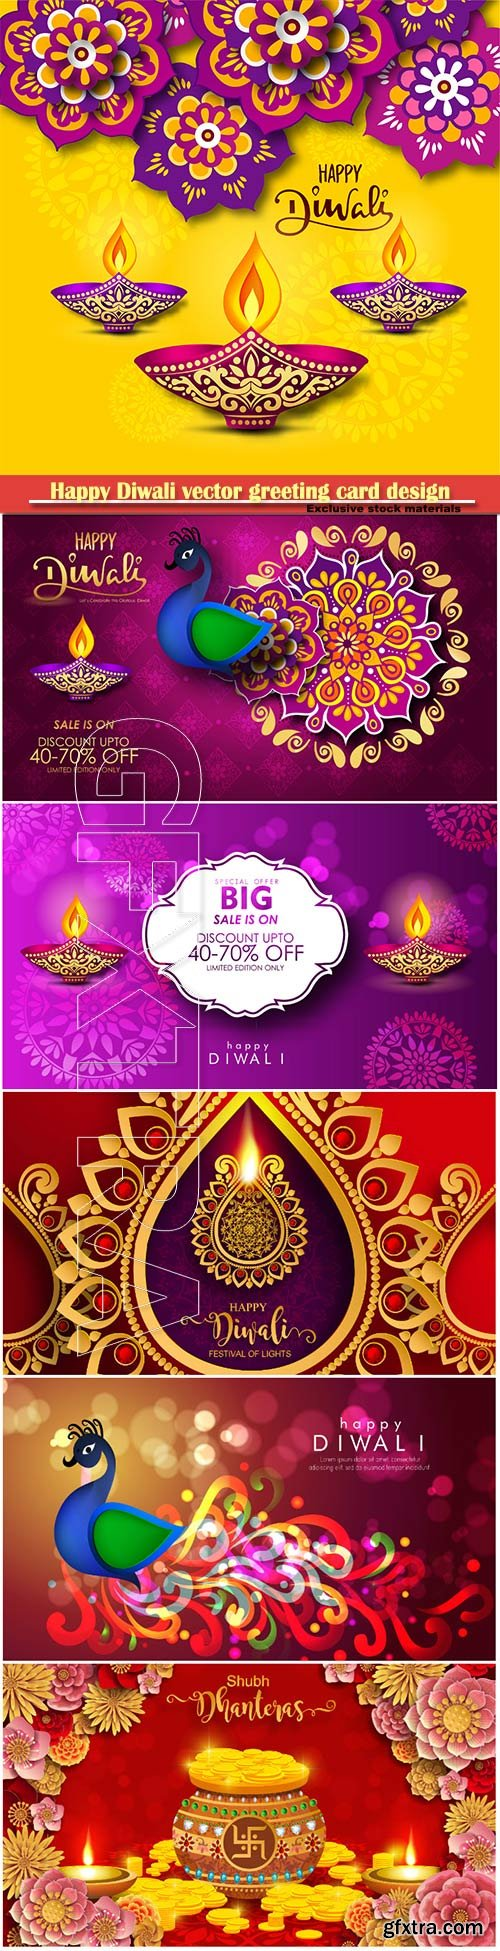 Happy Diwali vector greeting card design